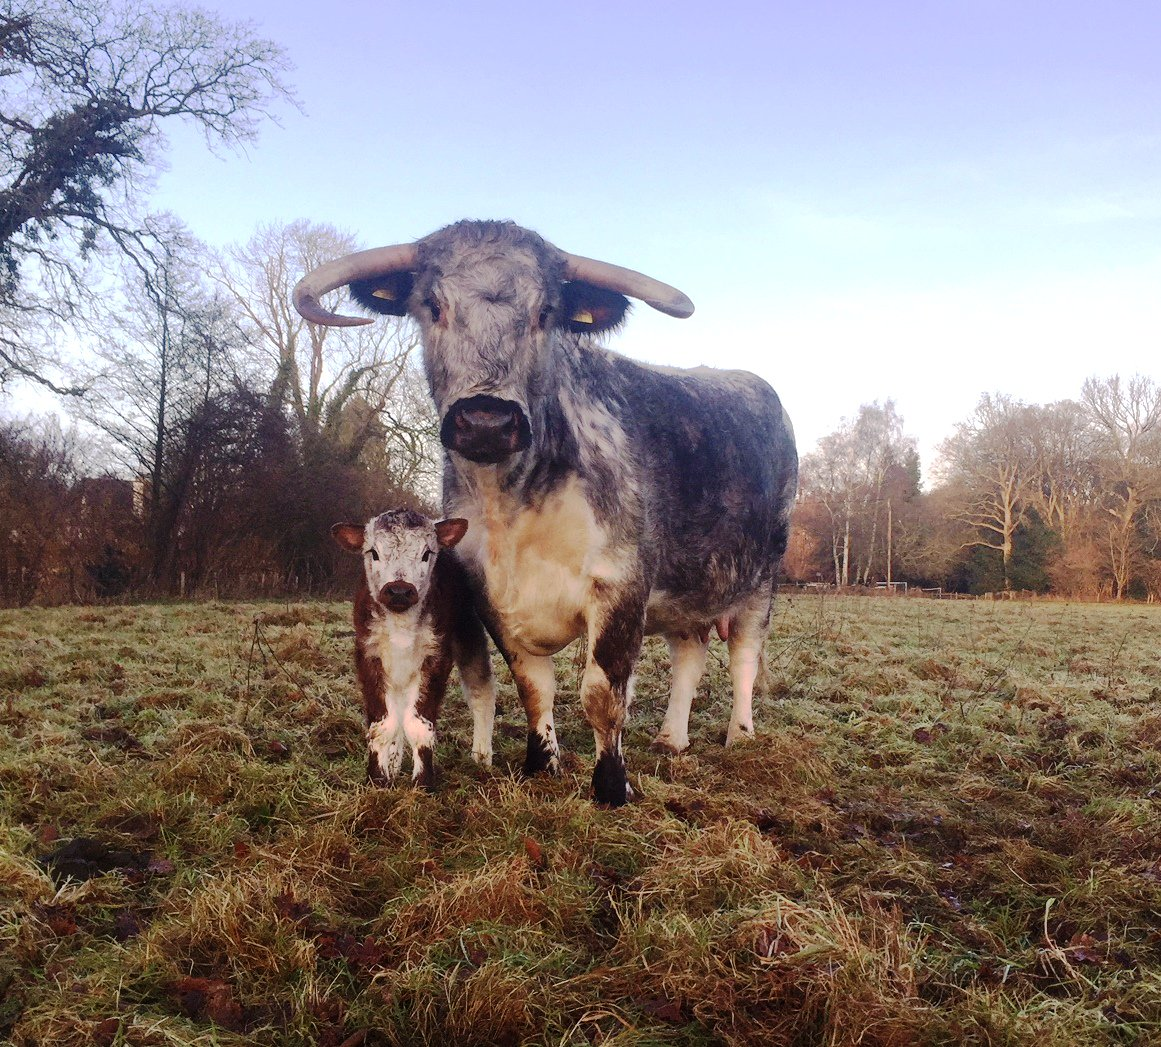 How's this for cute?!! The first calf born to our Loseley Longhorn herd. Mum is Jezebel but the calf hasn't been named yet.  More calves expected towards the end of the month. #newlife #spring #baby #cattlereturntoloseley @LonghornOffice @SurreyLife @GuildfordTIC @RBSTrarebreeds